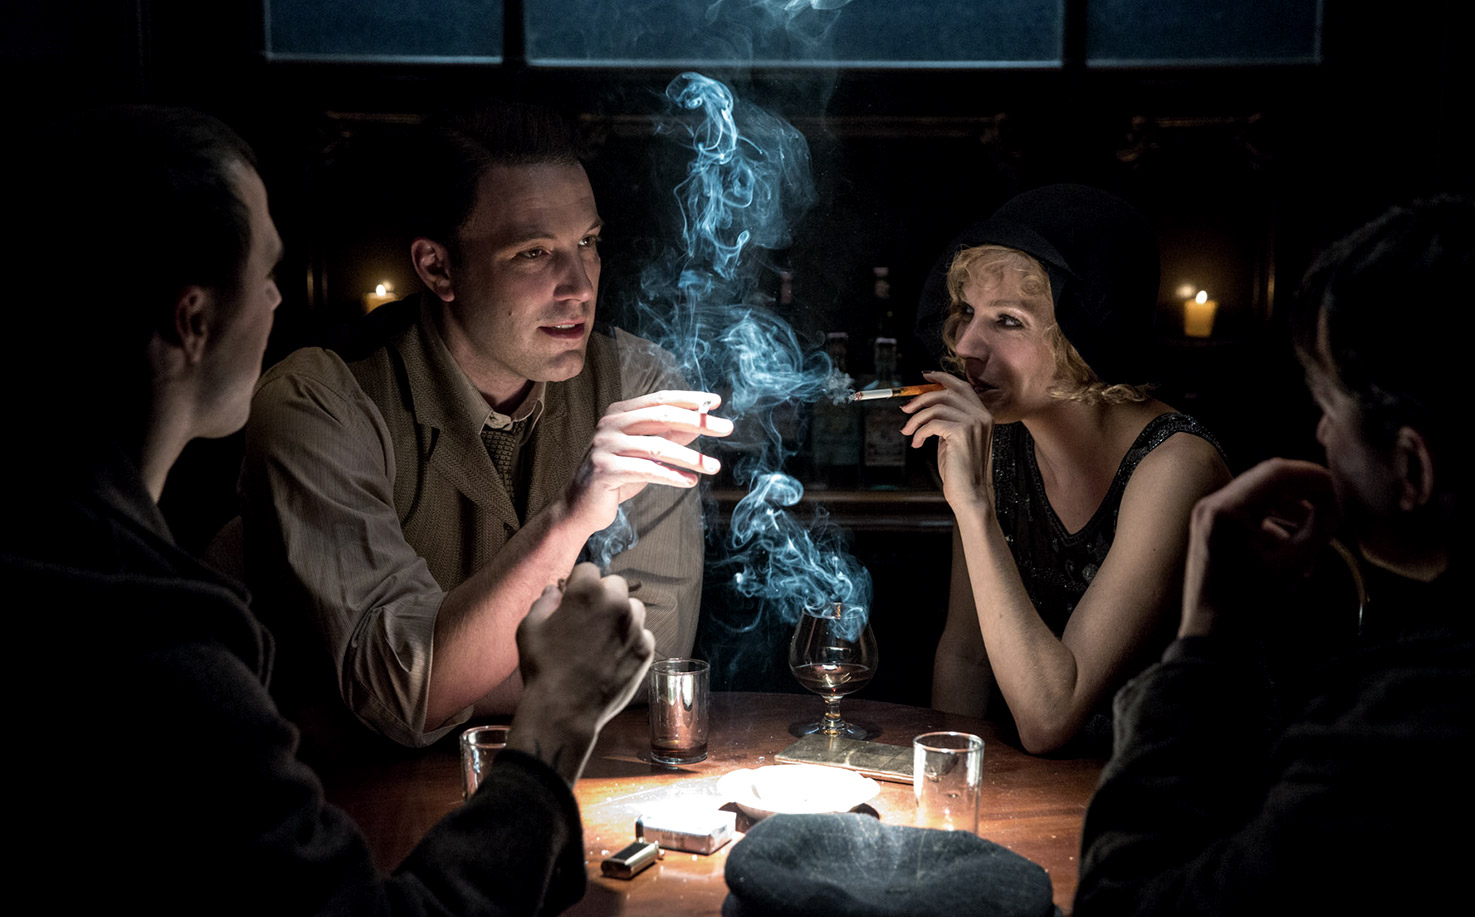 MOVIES: Live By Night - Review